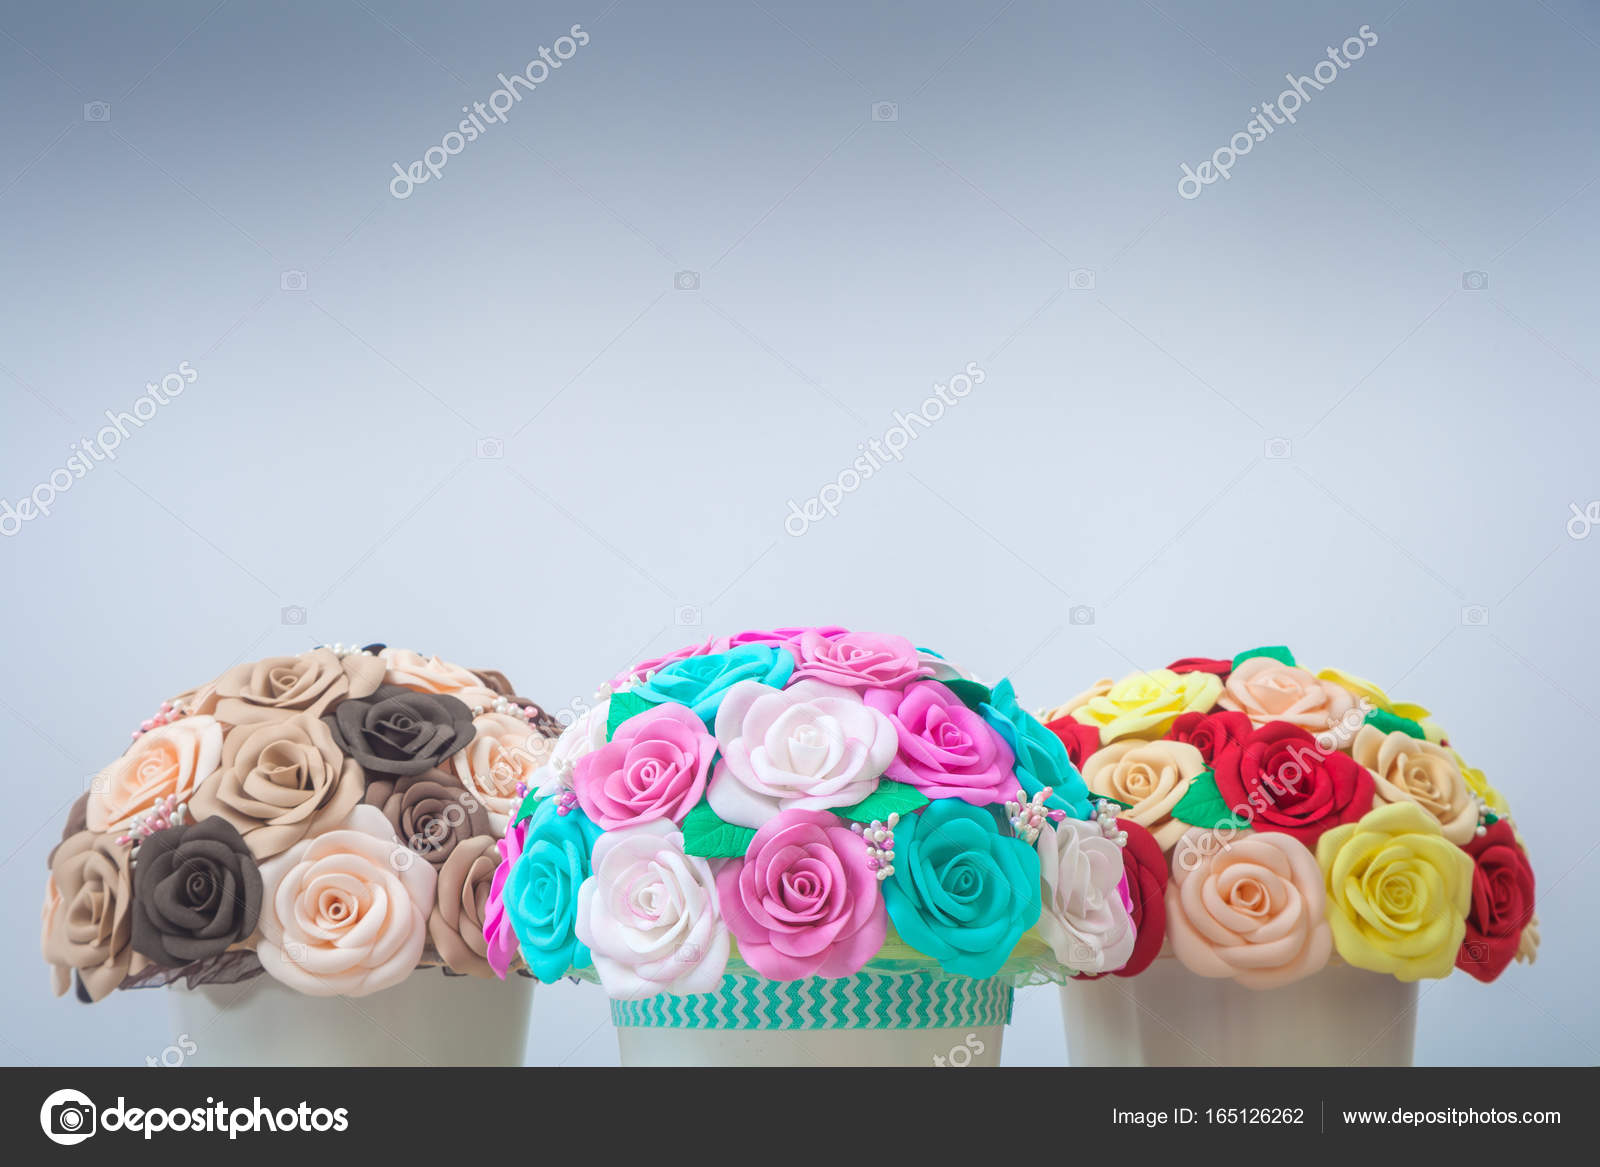 Artificial flowers roses from foam stock photo everyonensk artificial flowers roses from foam pink blue and white red yellow brown collected in a bouquet in three white pots stand on a light wooden table for mightylinksfo